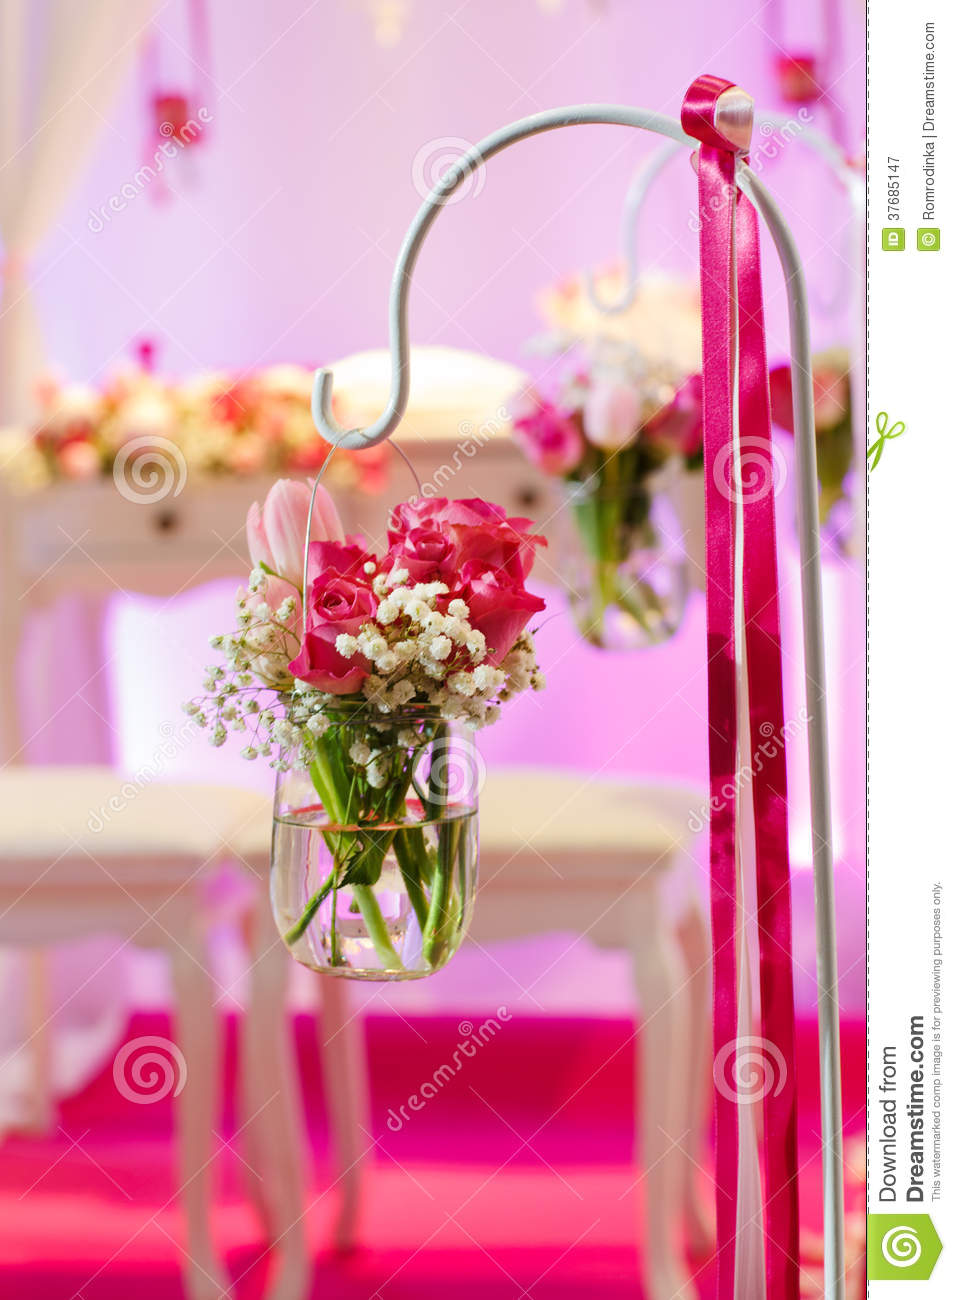 Beautiful Flower Arrangement In White And Pink For Wedding Or Event